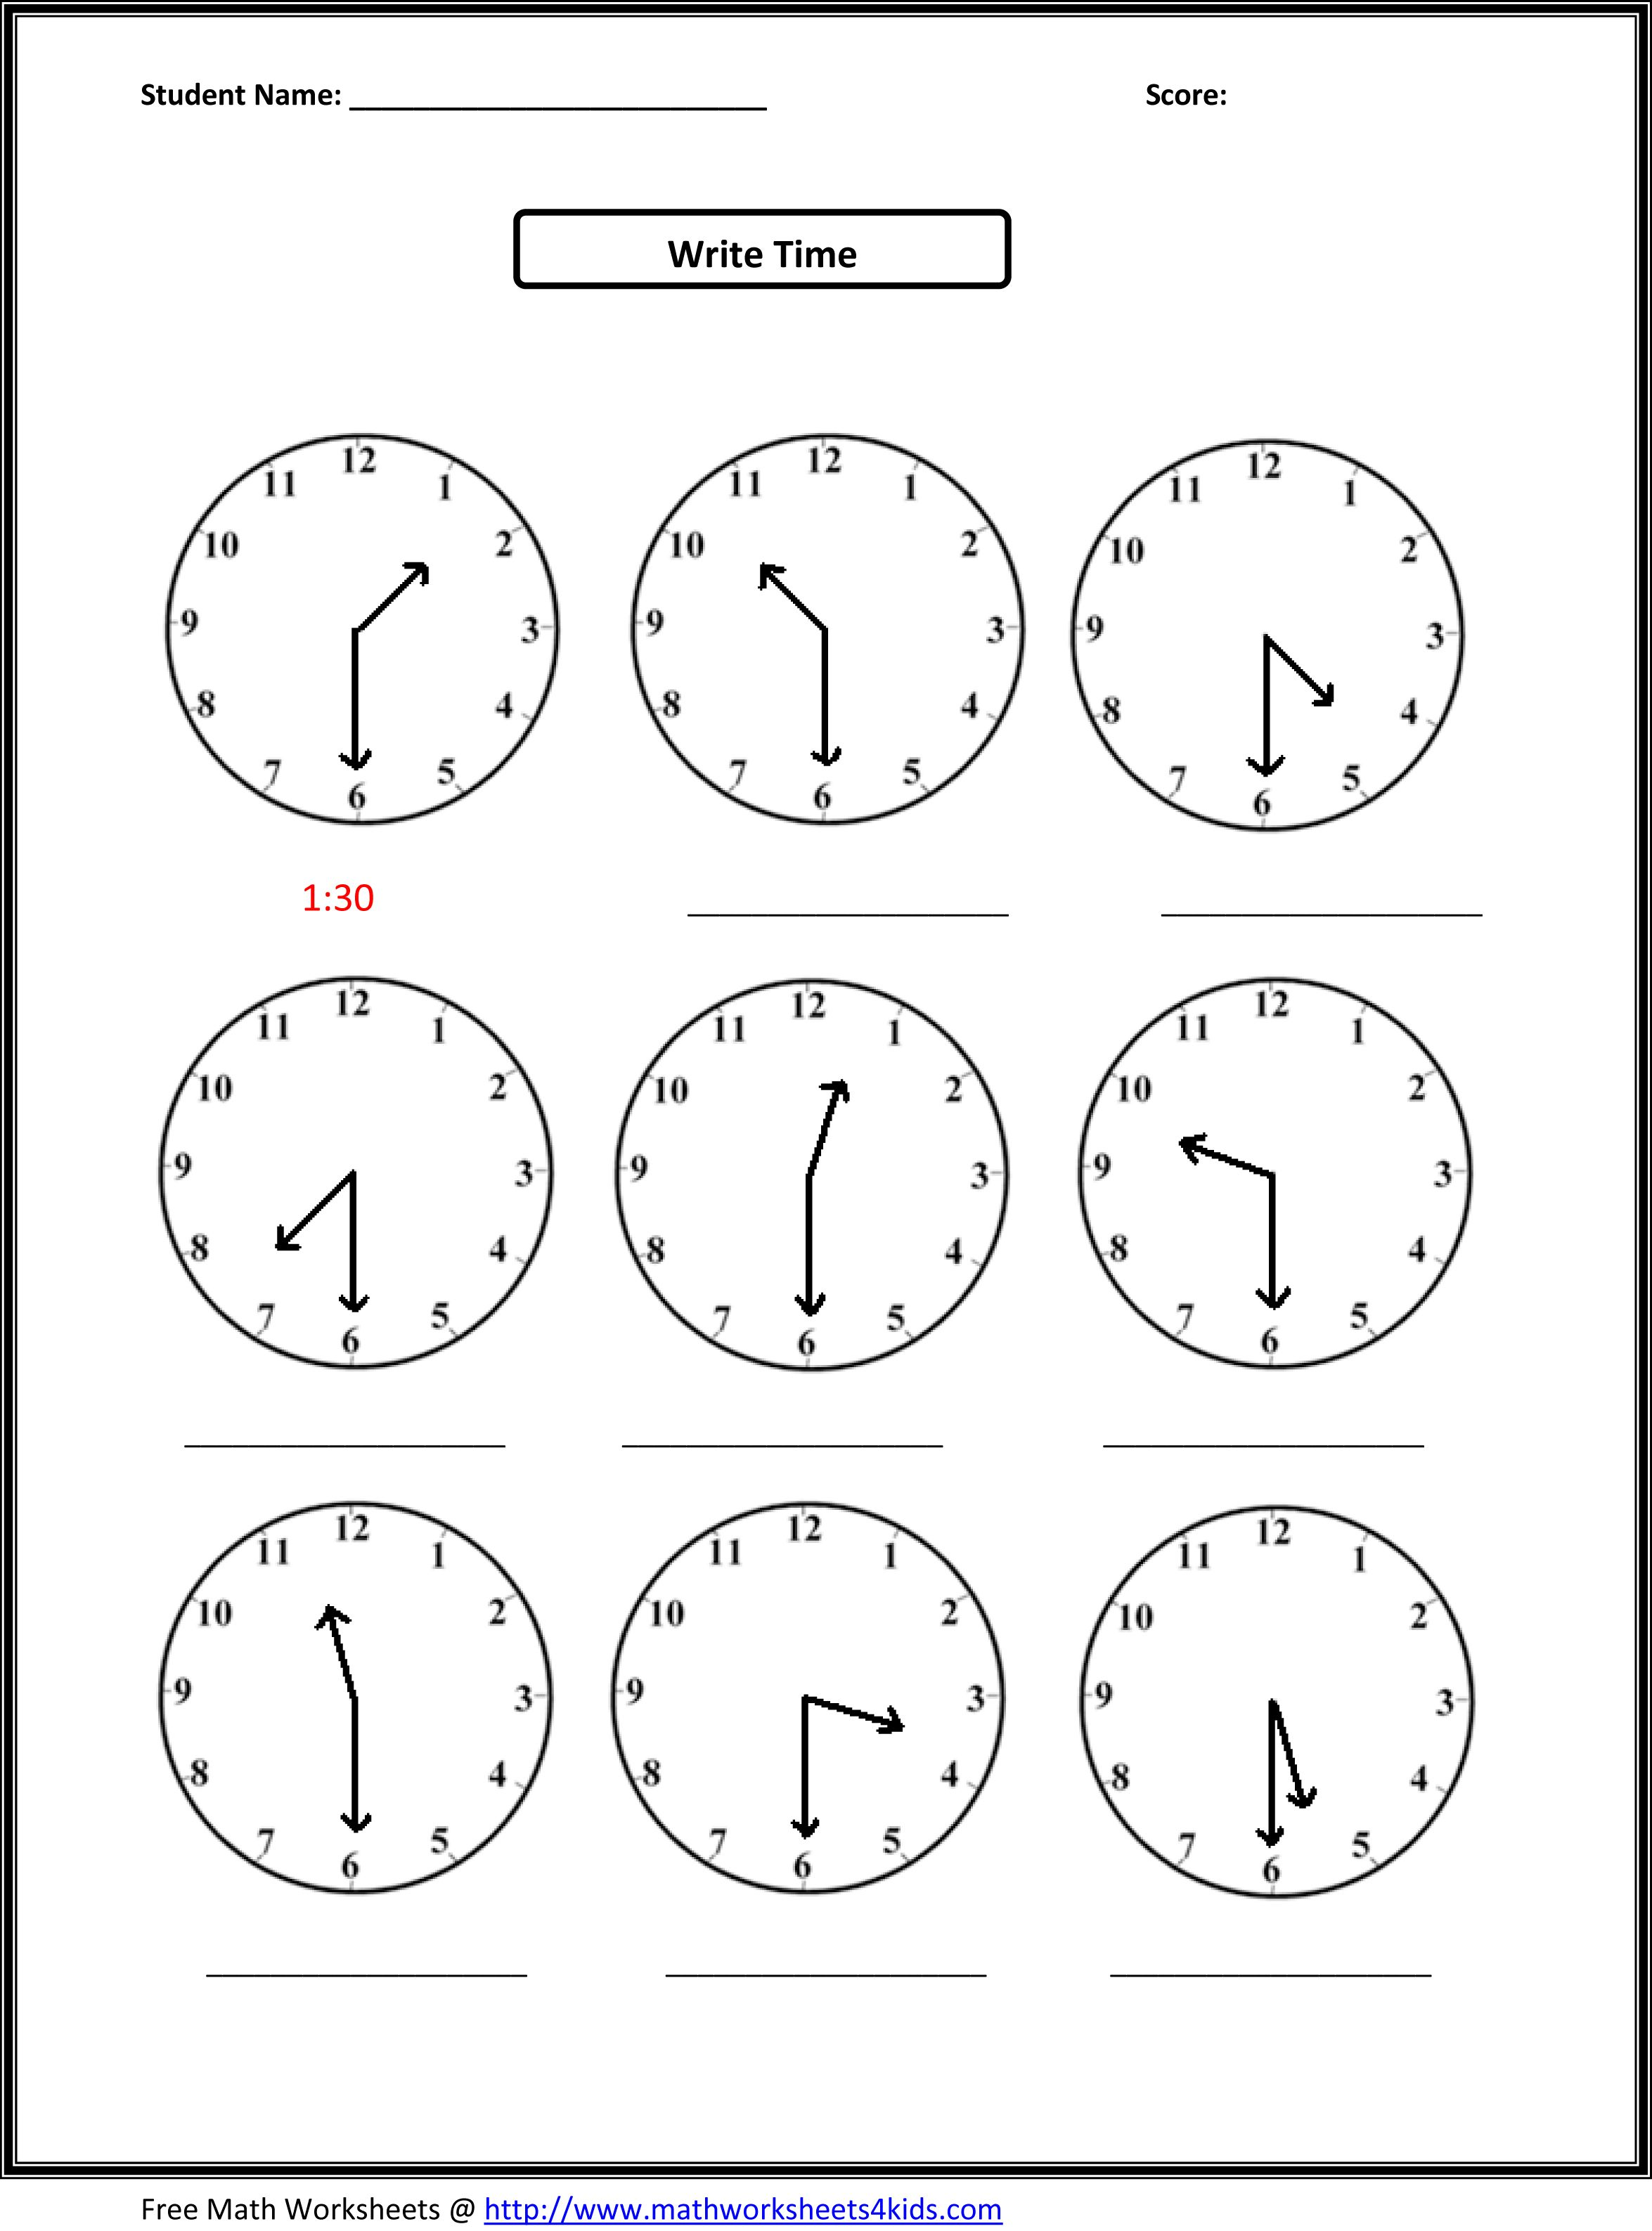 Proatmealus  Winsome Worksheet On Time For Grade   Reocurent With Hot Free Printable Telling Time Worksheets Nd Grade  Reocurent With Archaic Light Waves Chem Worksheet   Answers Also Boyles And Charles Law Worksheet In Addition Genetics Vocabulary Worksheet Answers And Mood And Tone Worksheets As Well As Long Division Worksheets Pdf Additionally Geometry Circles Worksheets From Reocurentcom With Proatmealus  Hot Worksheet On Time For Grade   Reocurent With Archaic Free Printable Telling Time Worksheets Nd Grade  Reocurent And Winsome Light Waves Chem Worksheet   Answers Also Boyles And Charles Law Worksheet In Addition Genetics Vocabulary Worksheet Answers From Reocurentcom